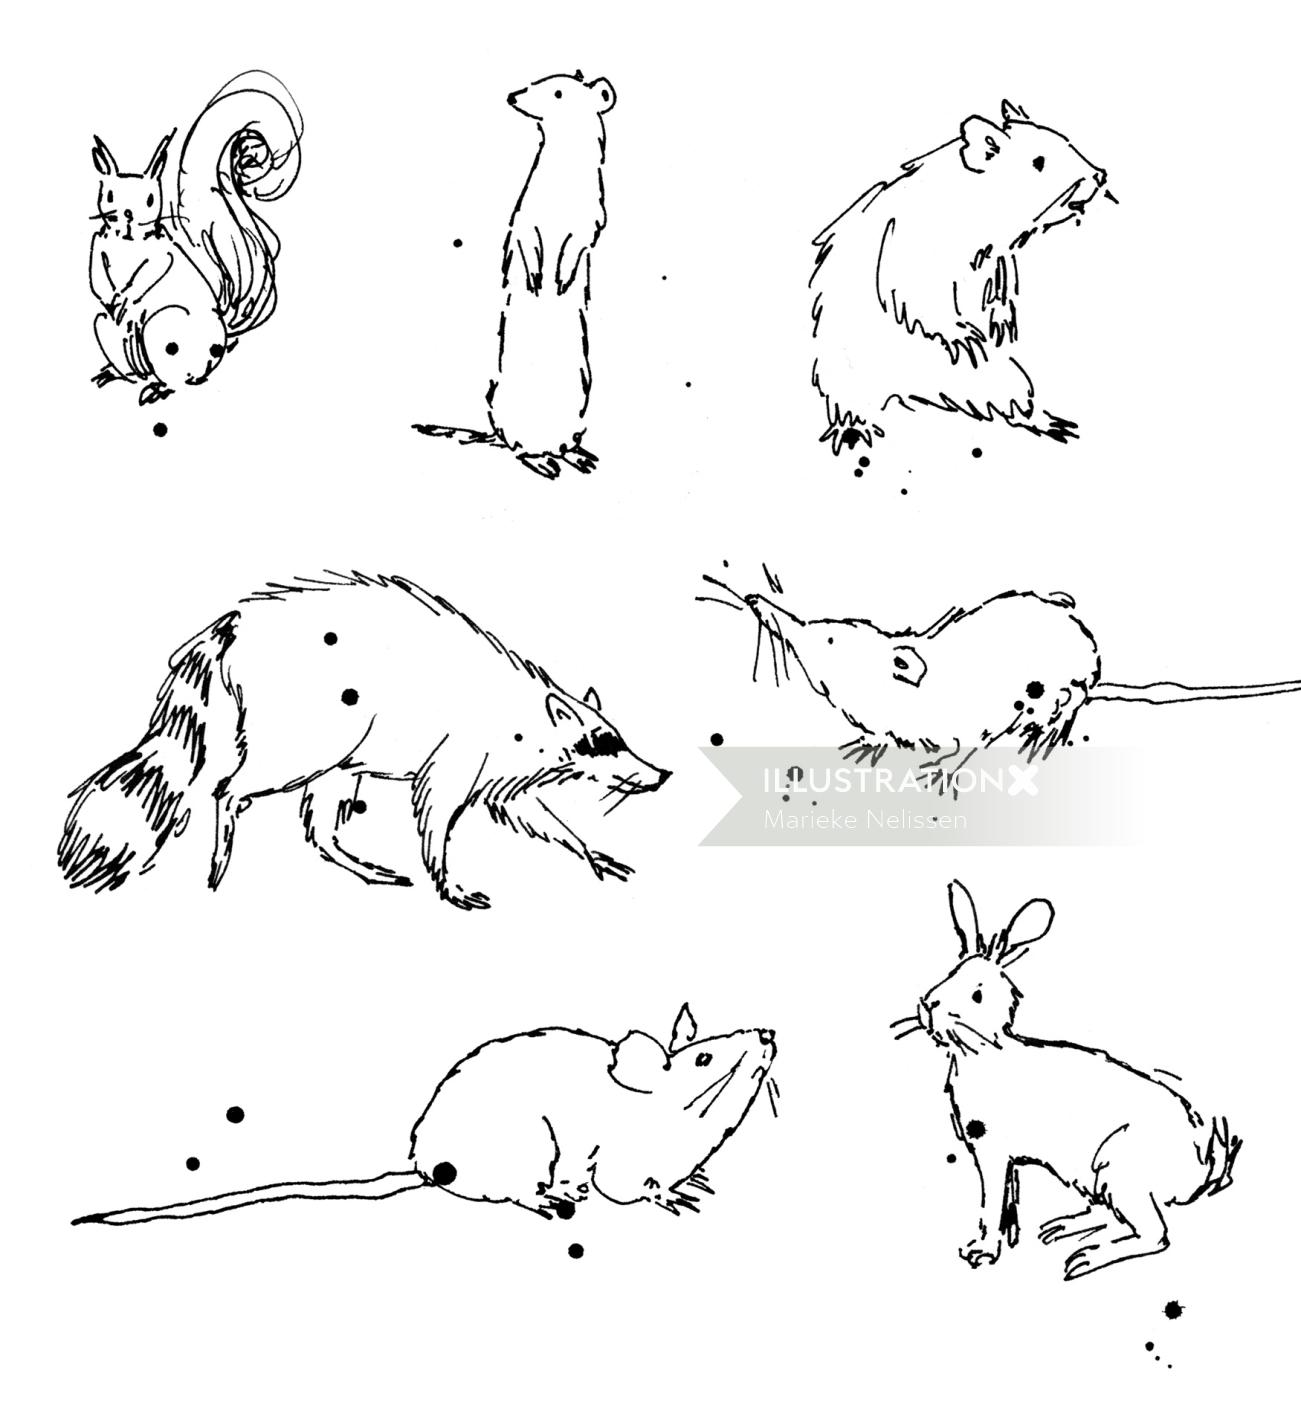 Loose line drawing of small wild animals.